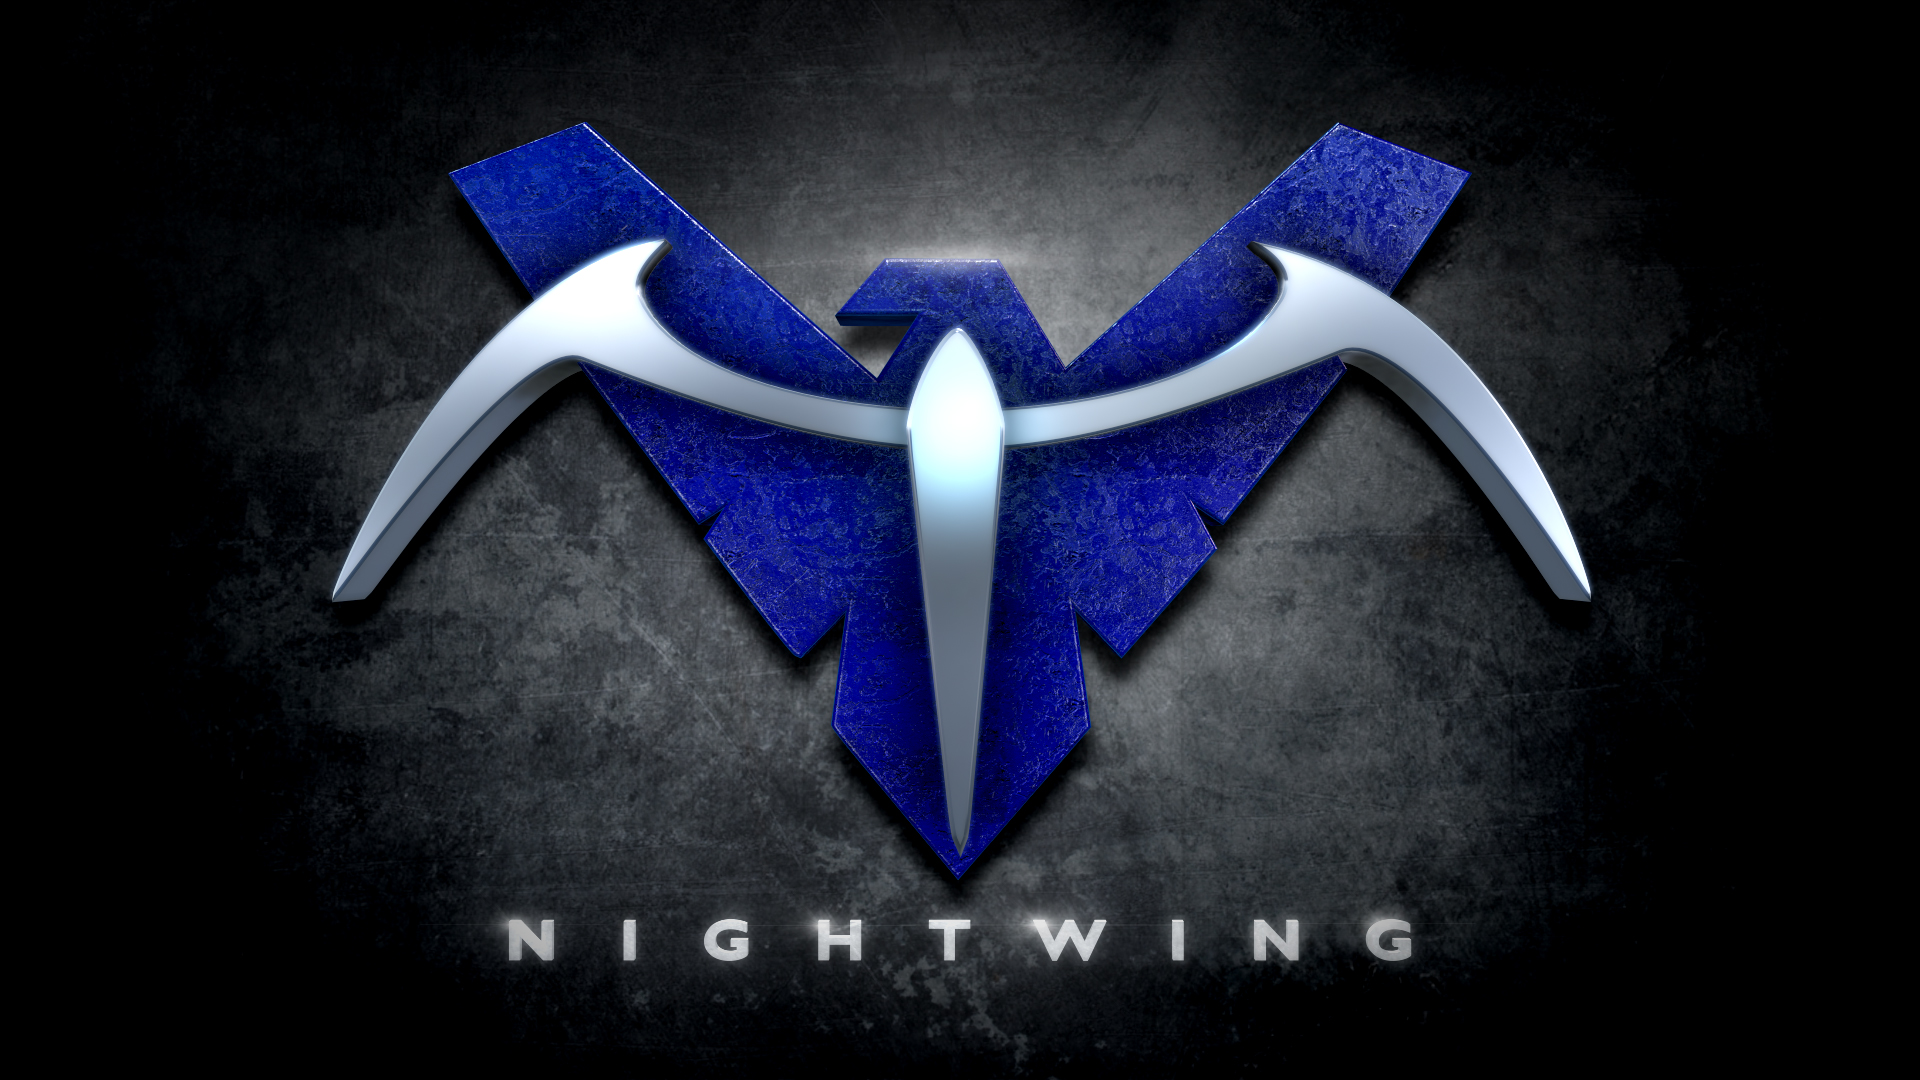 Image Gallery nightwing logo wallpaper